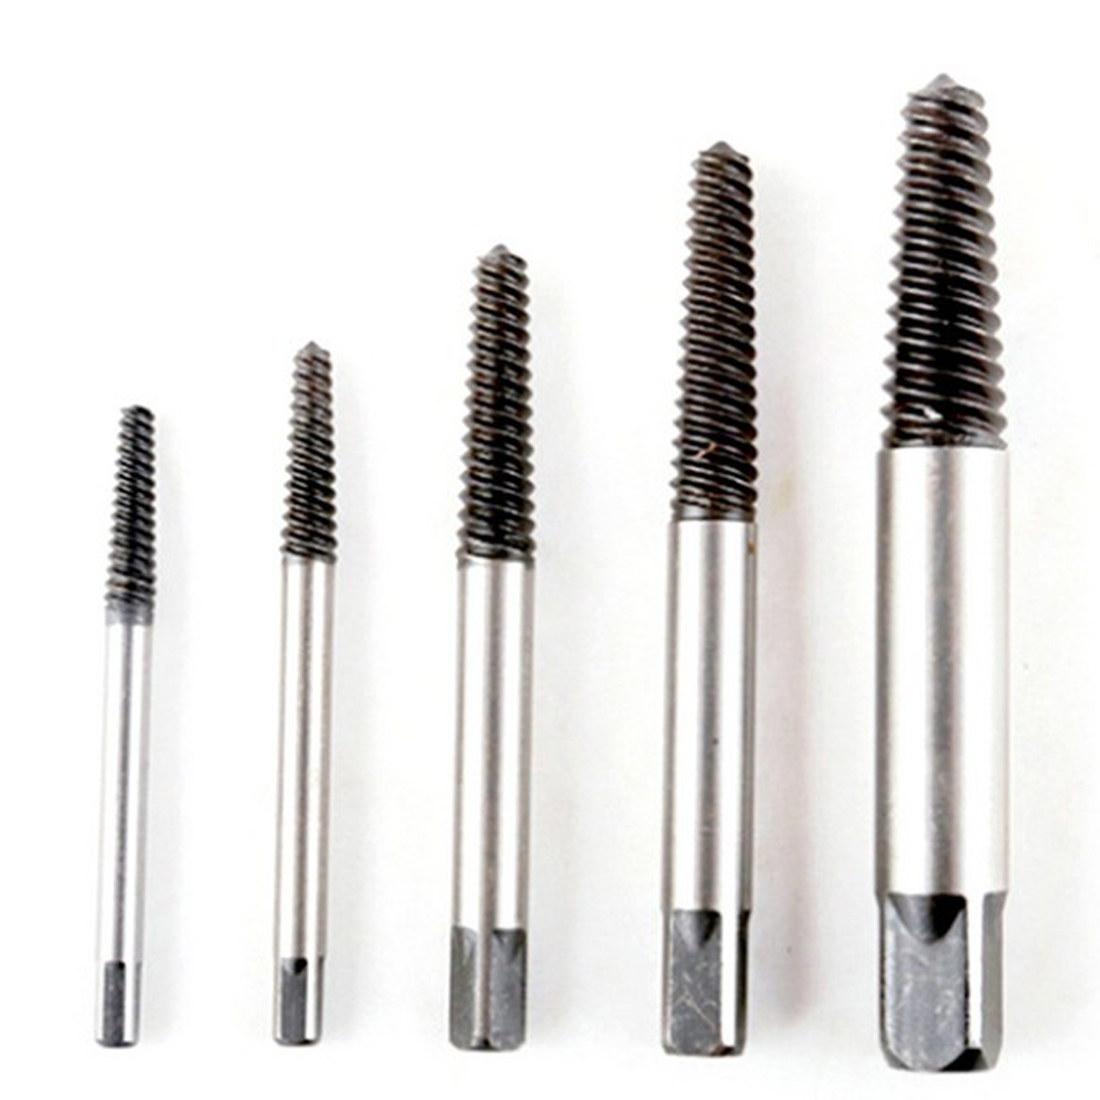 5pcs/set  Carbon Steel Screw Extractor Broken Bolt Remover Drill Guide Bits Set High Quality